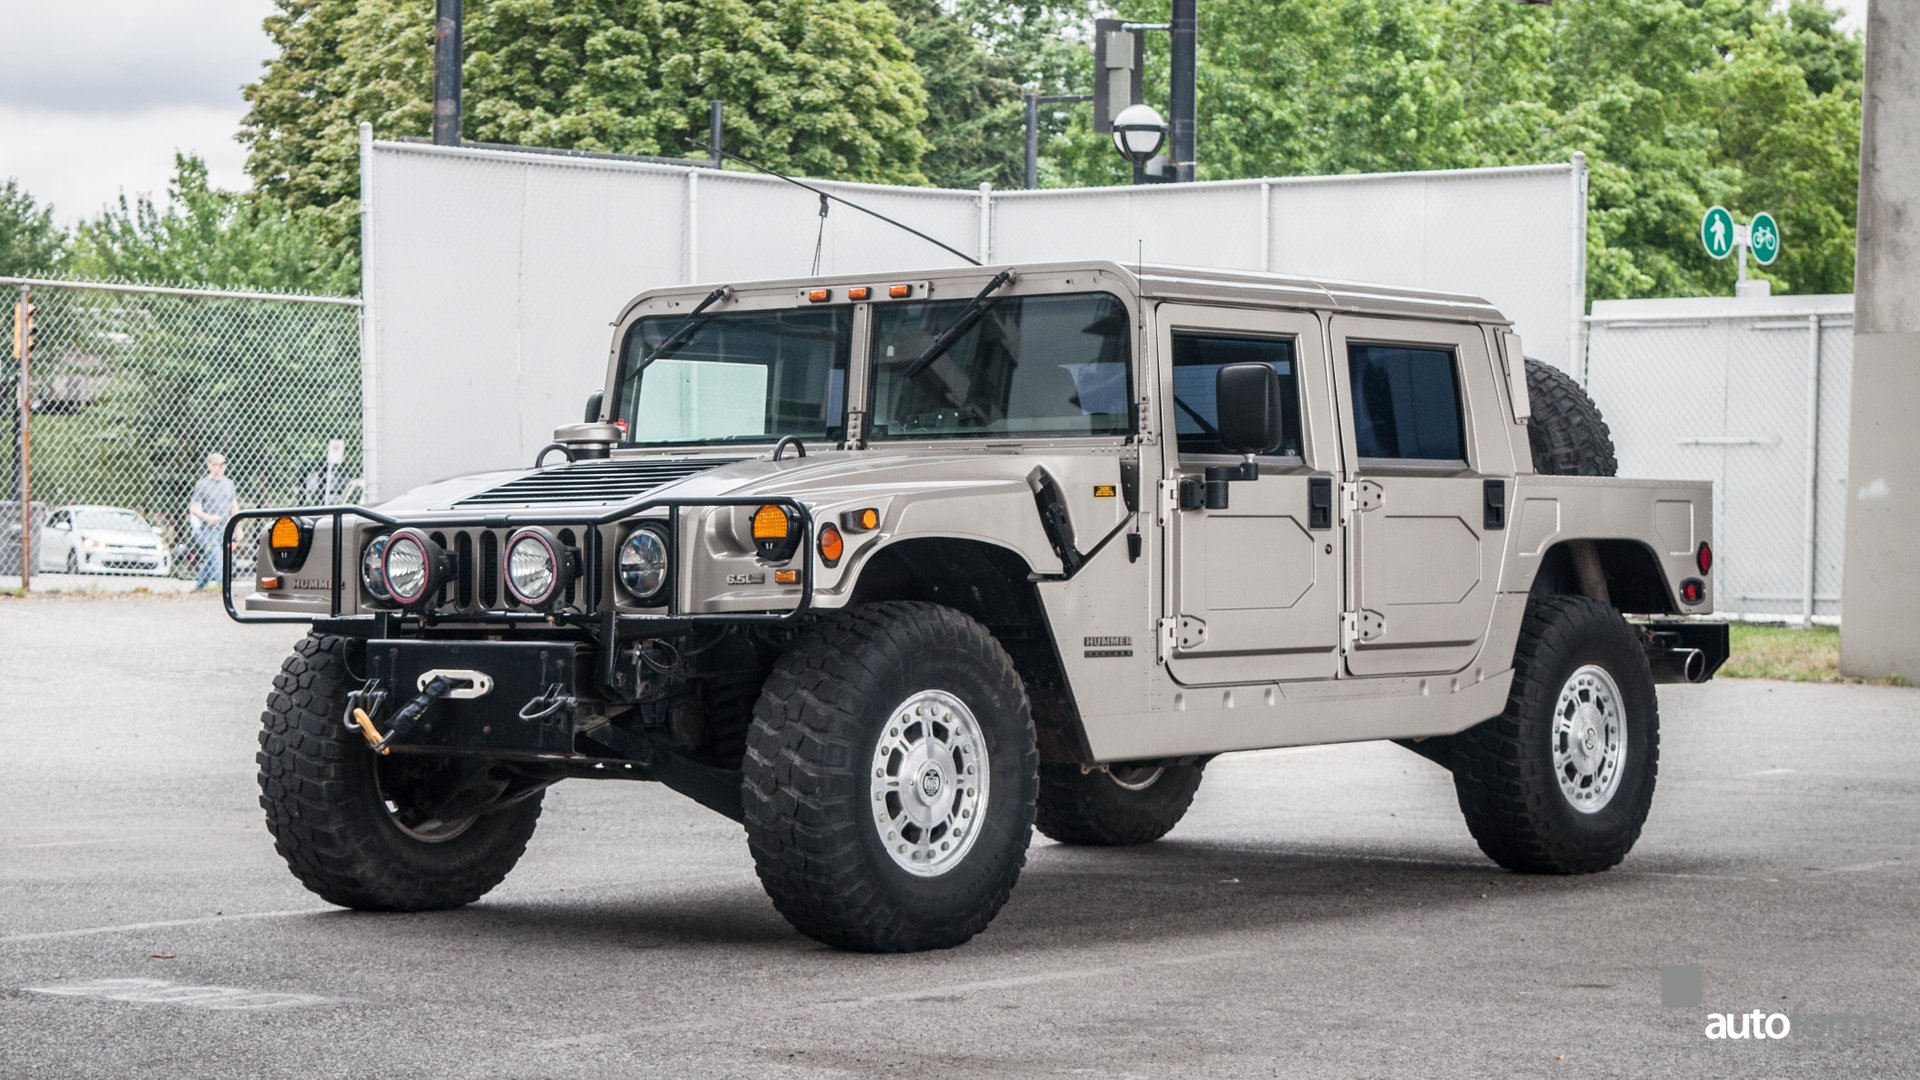 2000 am general hummer 4 passenger hard top